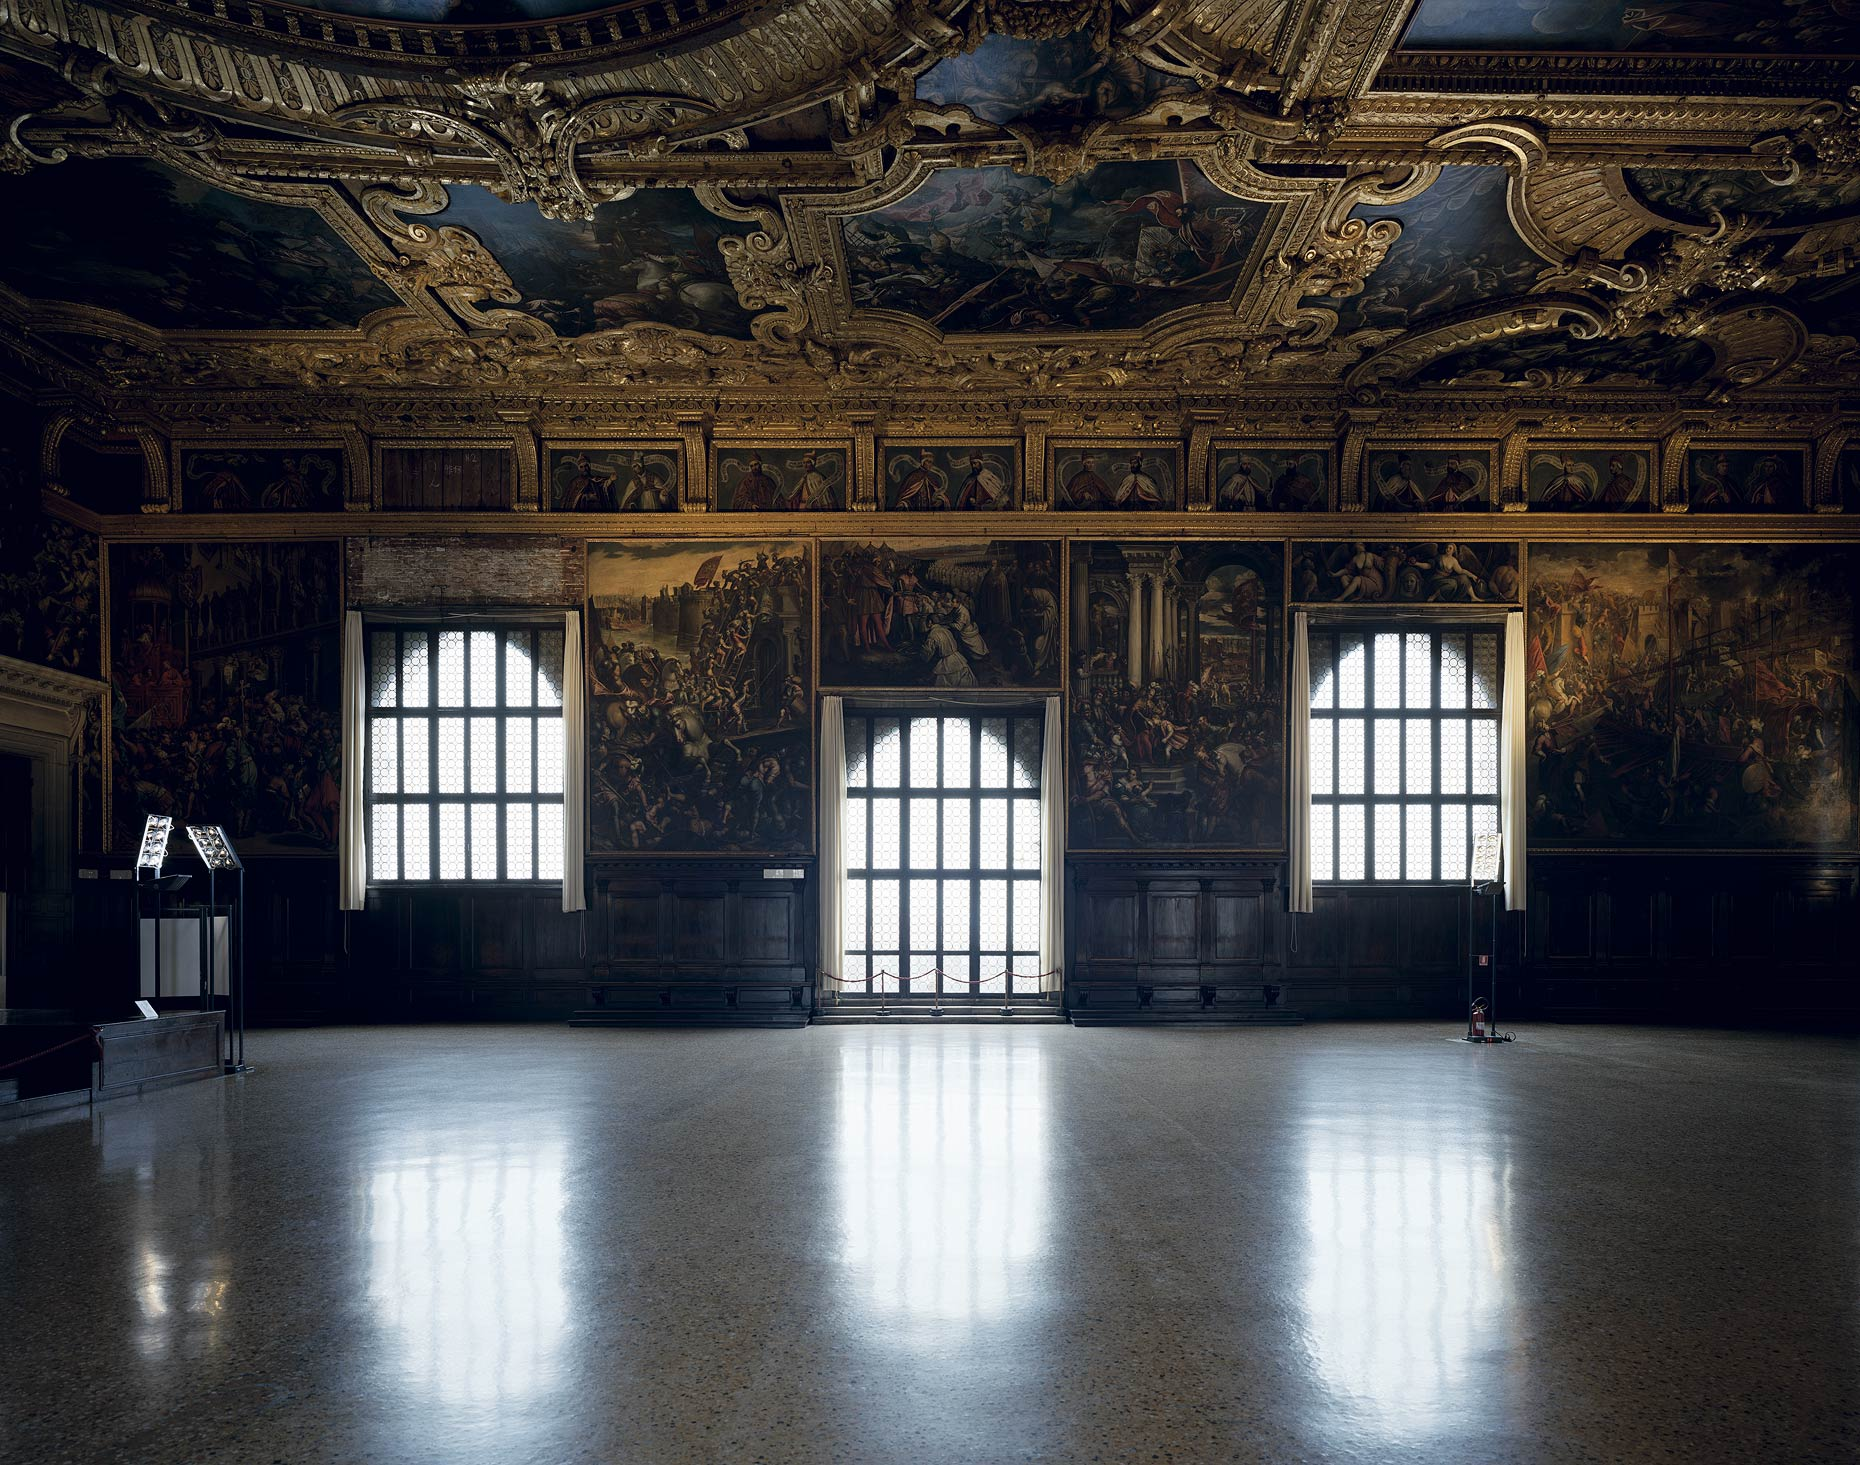 Palazzo Ducale, Venice, Italy, 2012